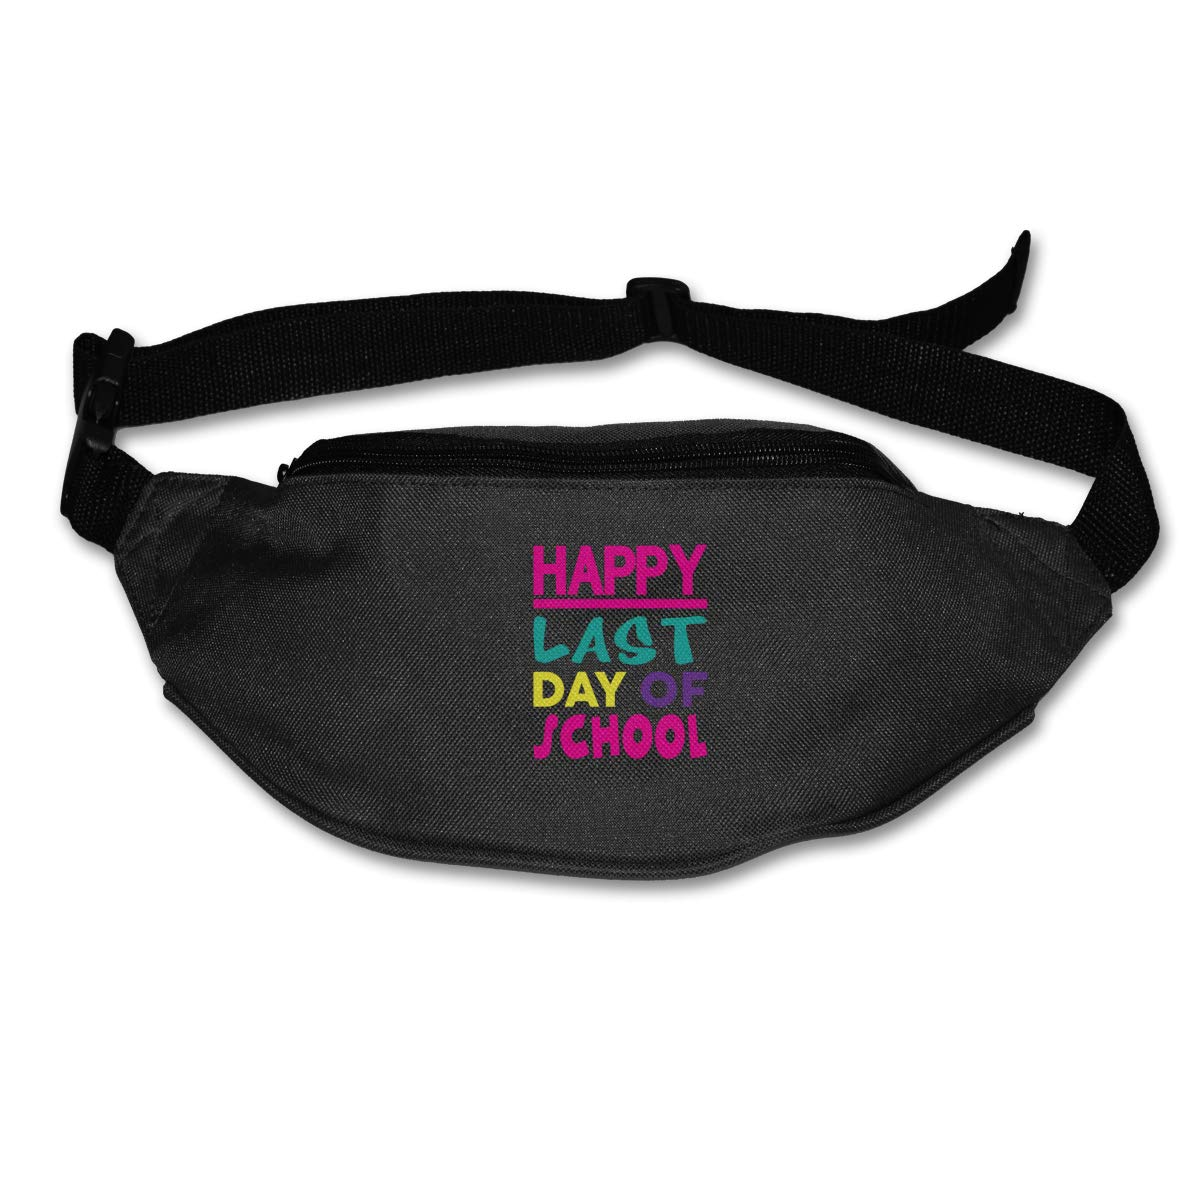 Happy Last Day 7 Sport Waist Bag Fanny Pack Adjustable For Travel